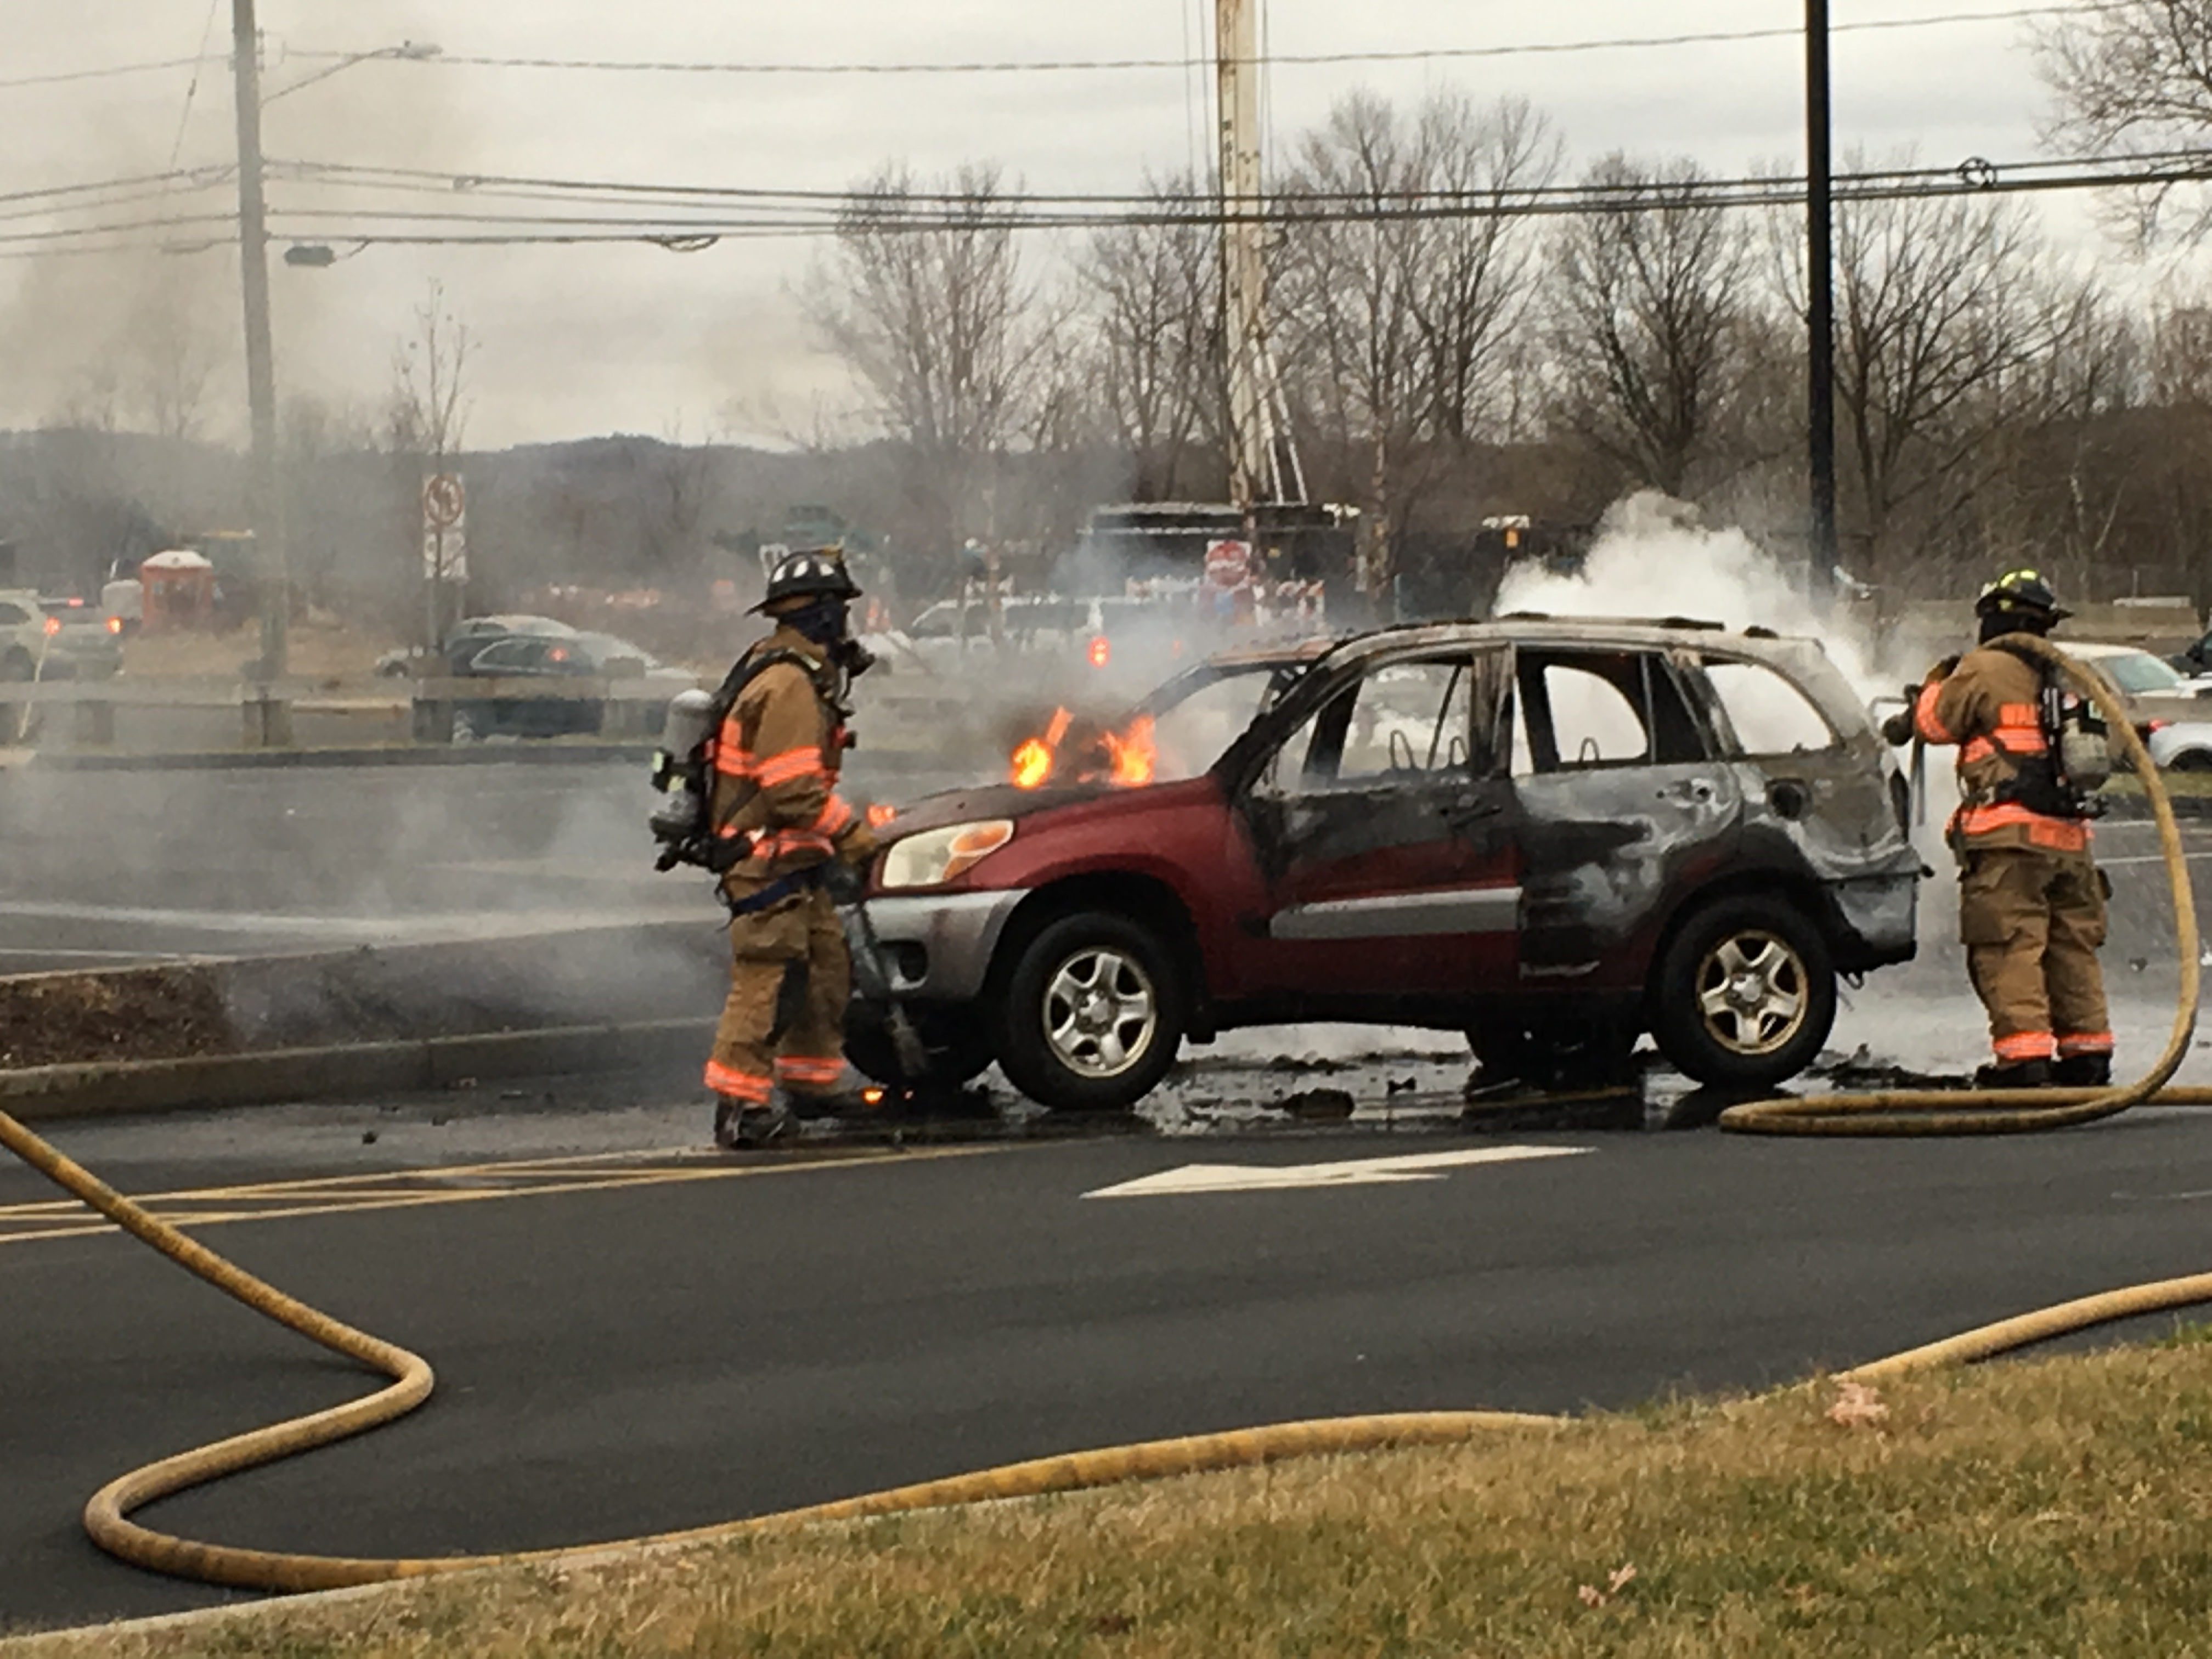 Firefighters extinguished a vehicle fire in the parking lot of IHOP on Route 5 just before 3:30 p.m. on Monday, Jan. 23, 2017. No injuries were reported. | Lauren Takores, Record-Journal